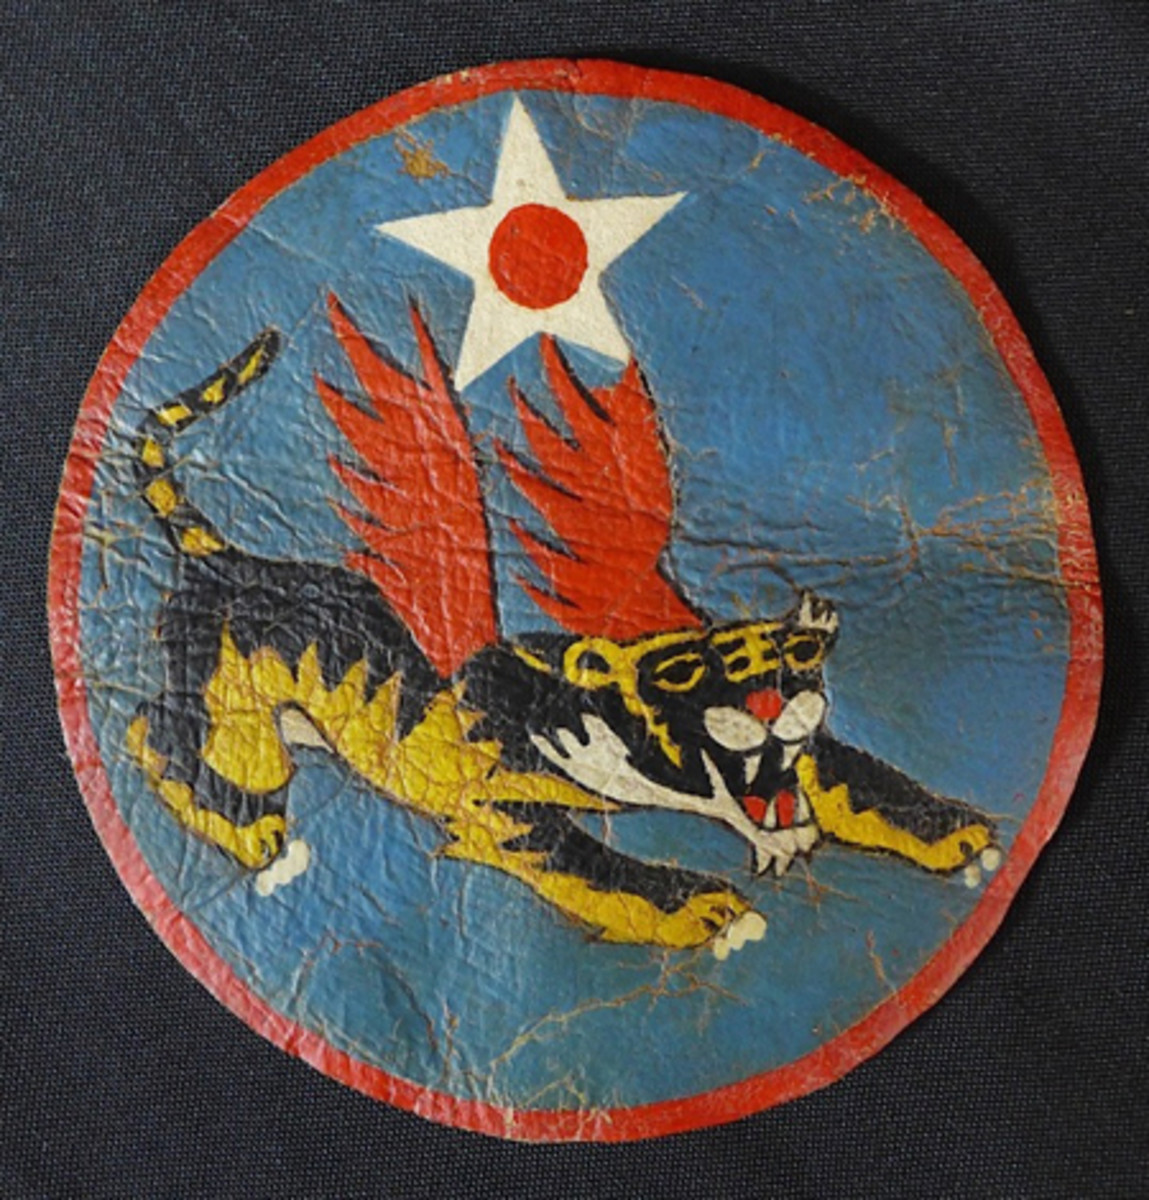 Rare USAAF 14th Flying Tigers leather patch, large 5¼-inch size, ex Gene Christian collection.